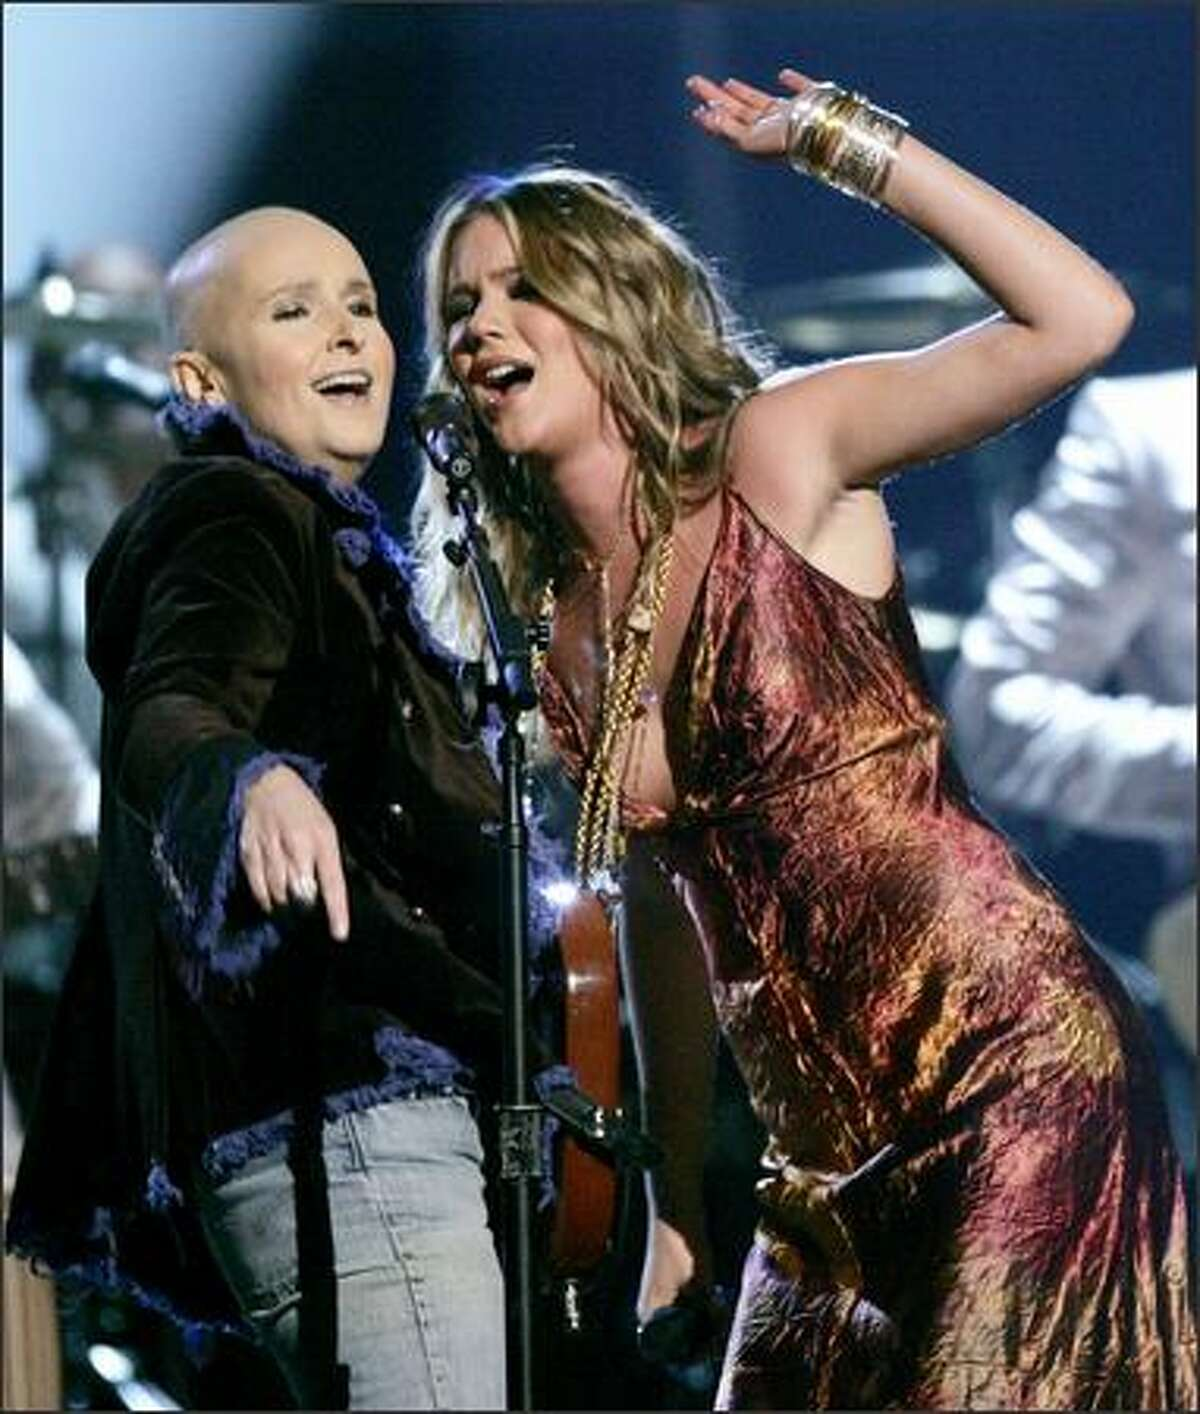 """Joss Stone, right, and Melissa Etheridge perform the medley """"Cry Baby/Piece of My Heart"""" in a tribute to the late Janis Joplin at the 47th Annual Grammy Awards. (AP Photo/Kevork Djansezian)"""